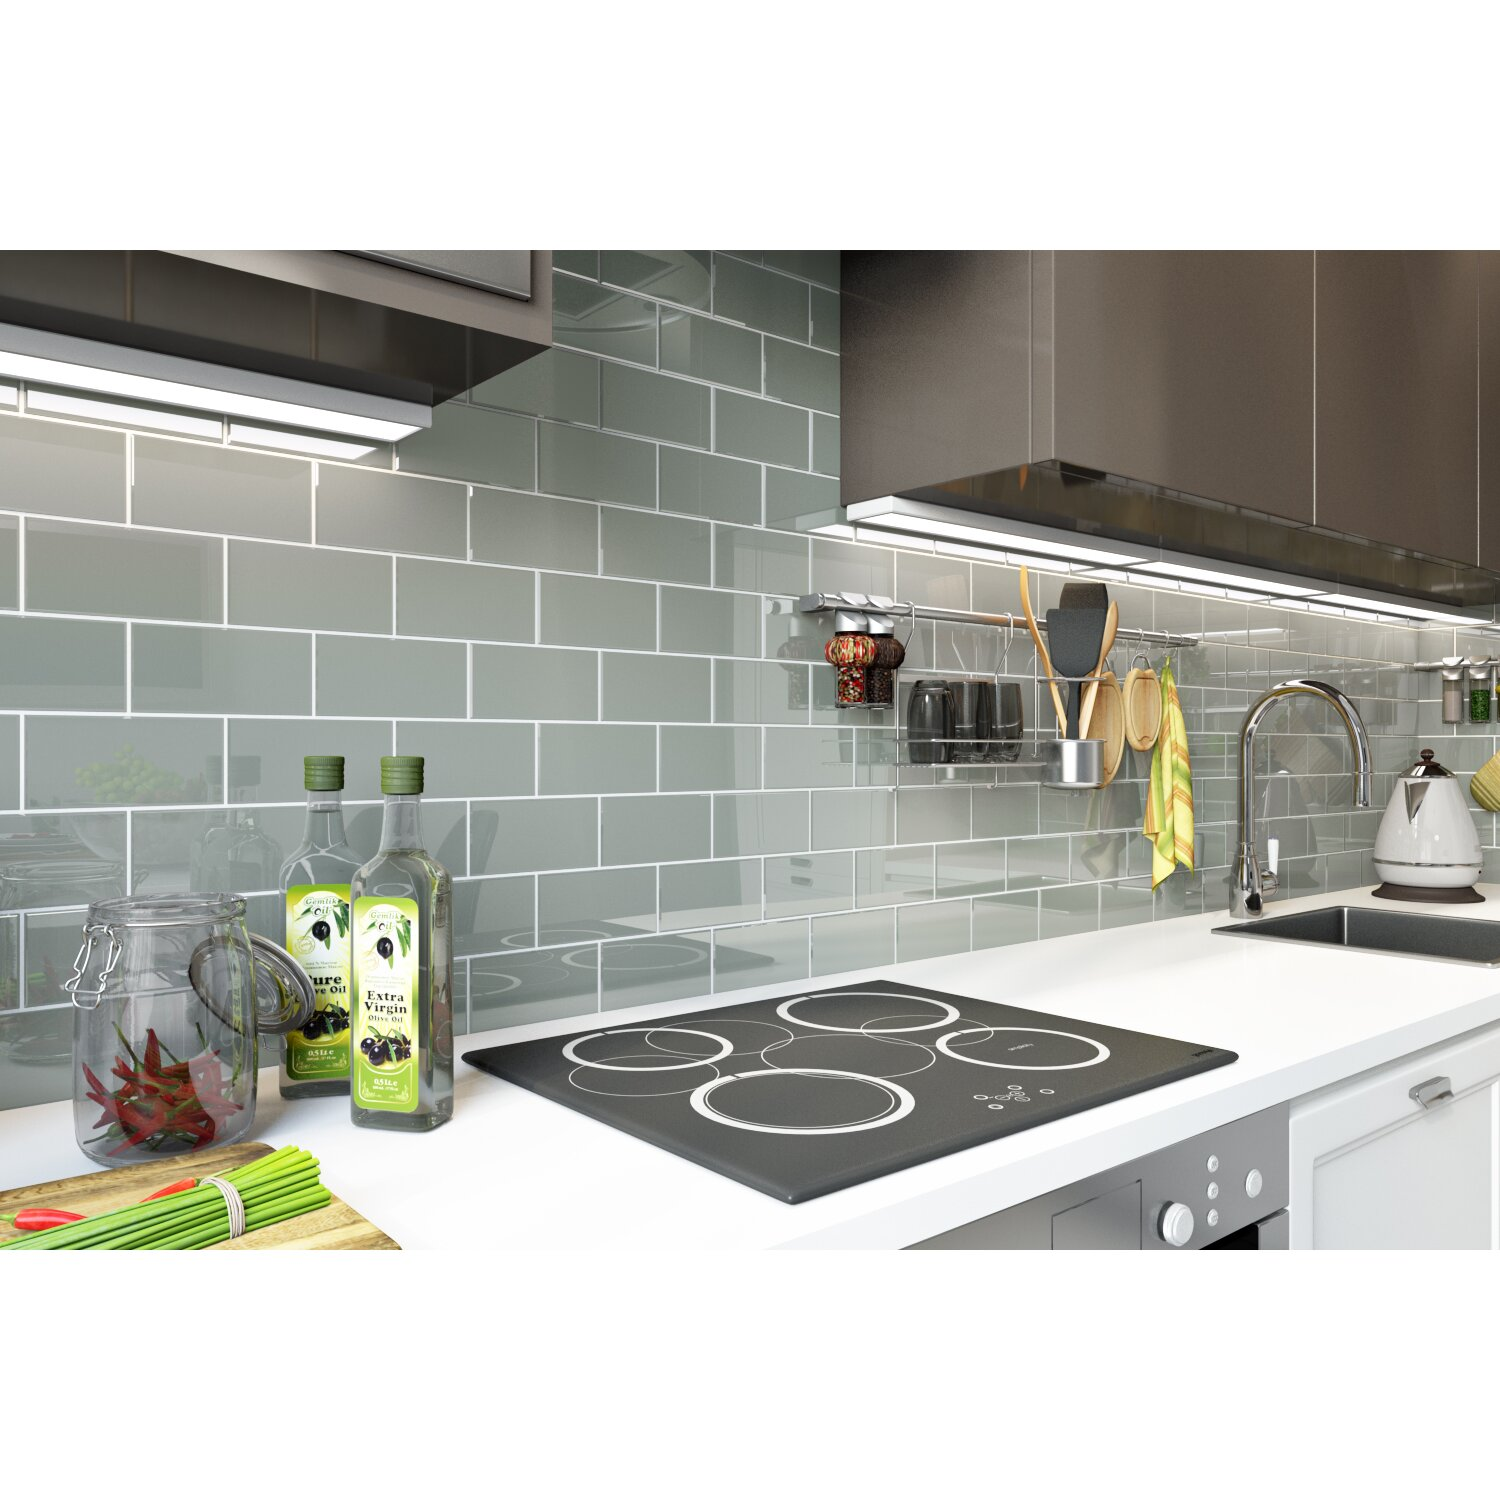 Subway tile grey